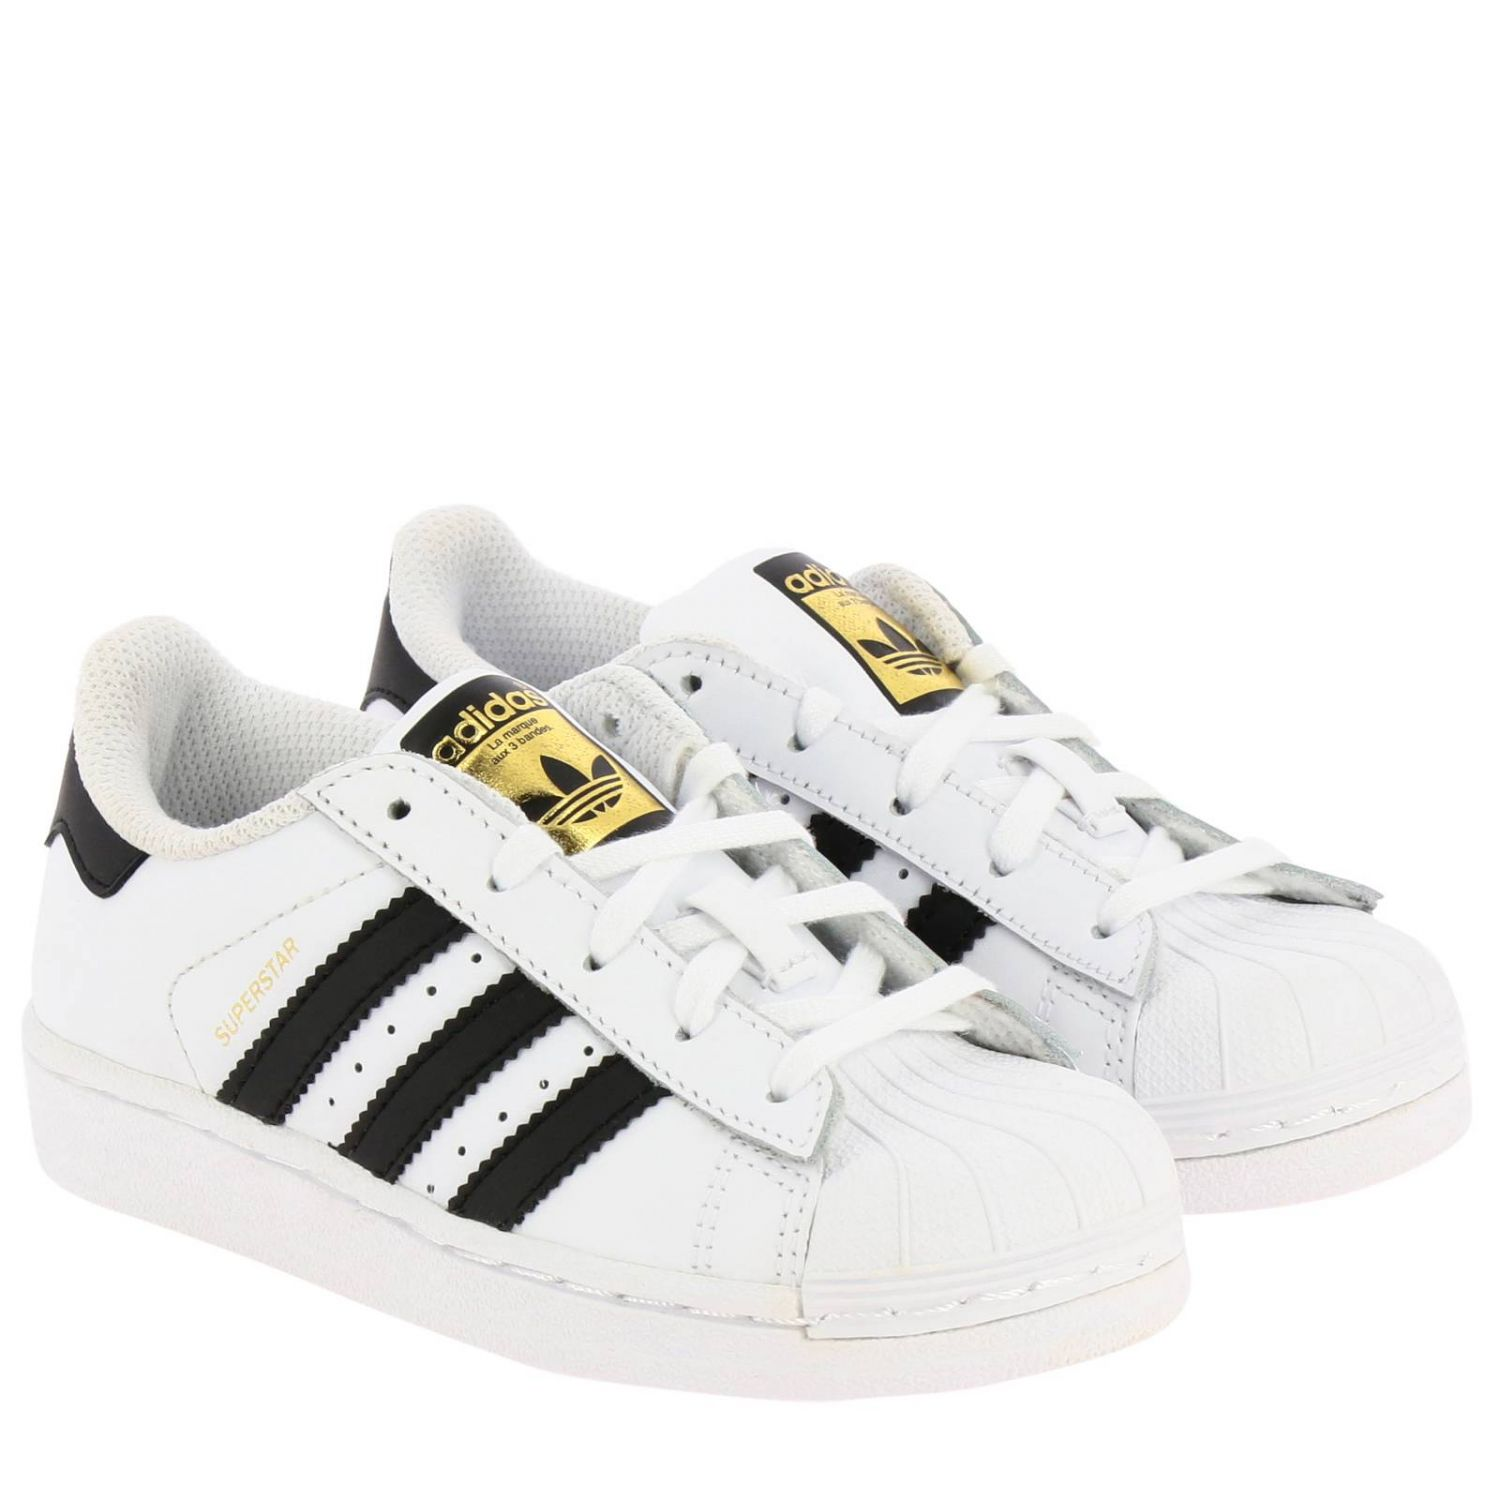 Shoes Adidas Originals: Adidas Originals Superstar Sneakers in leather with 3 contrasting stripes white 2